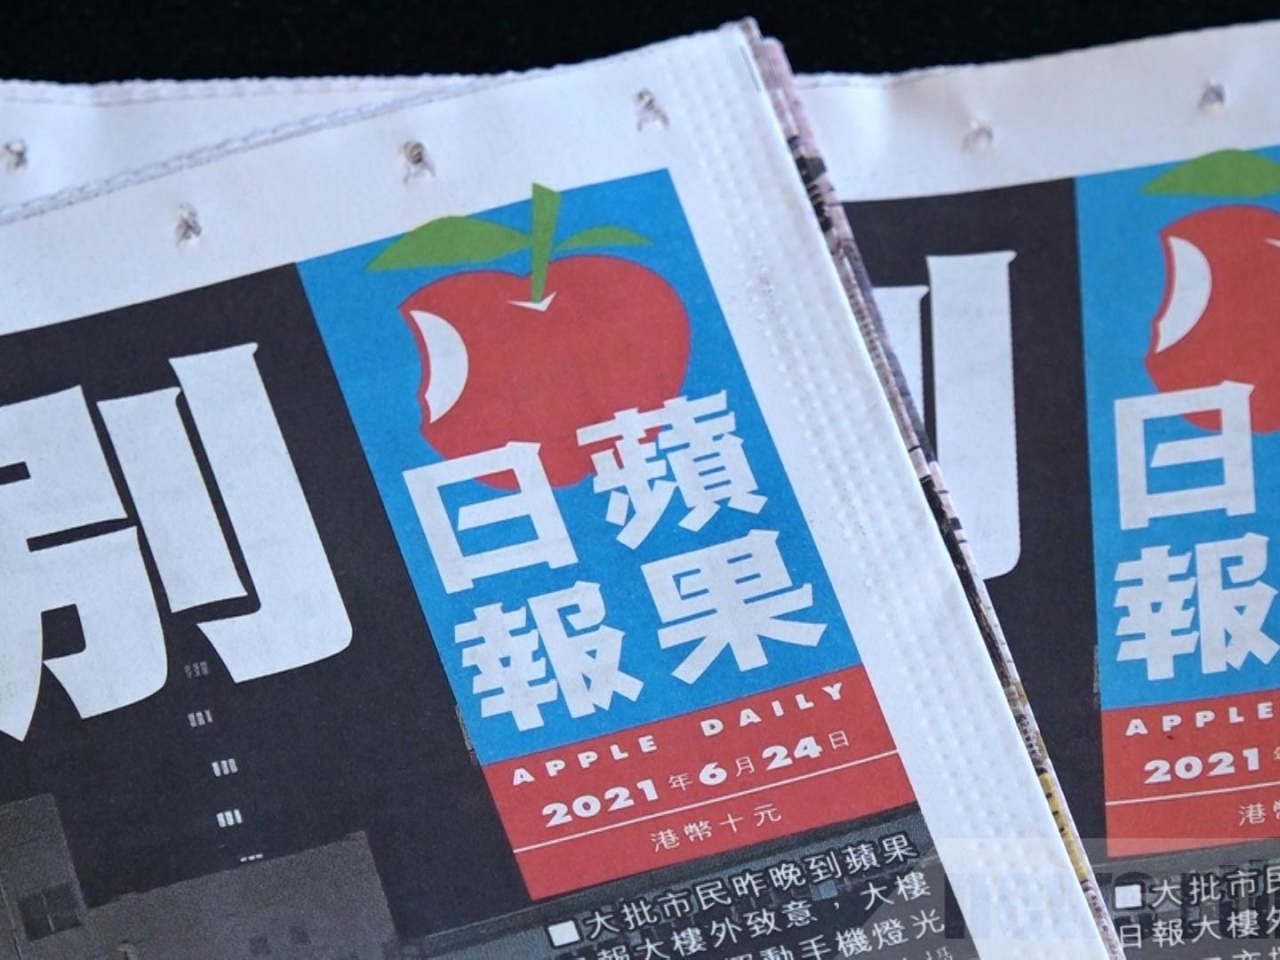 The Apple Daily execs have filed a court writ, seeking the return of any journalistic material or legally protected information. Photo: RTHK